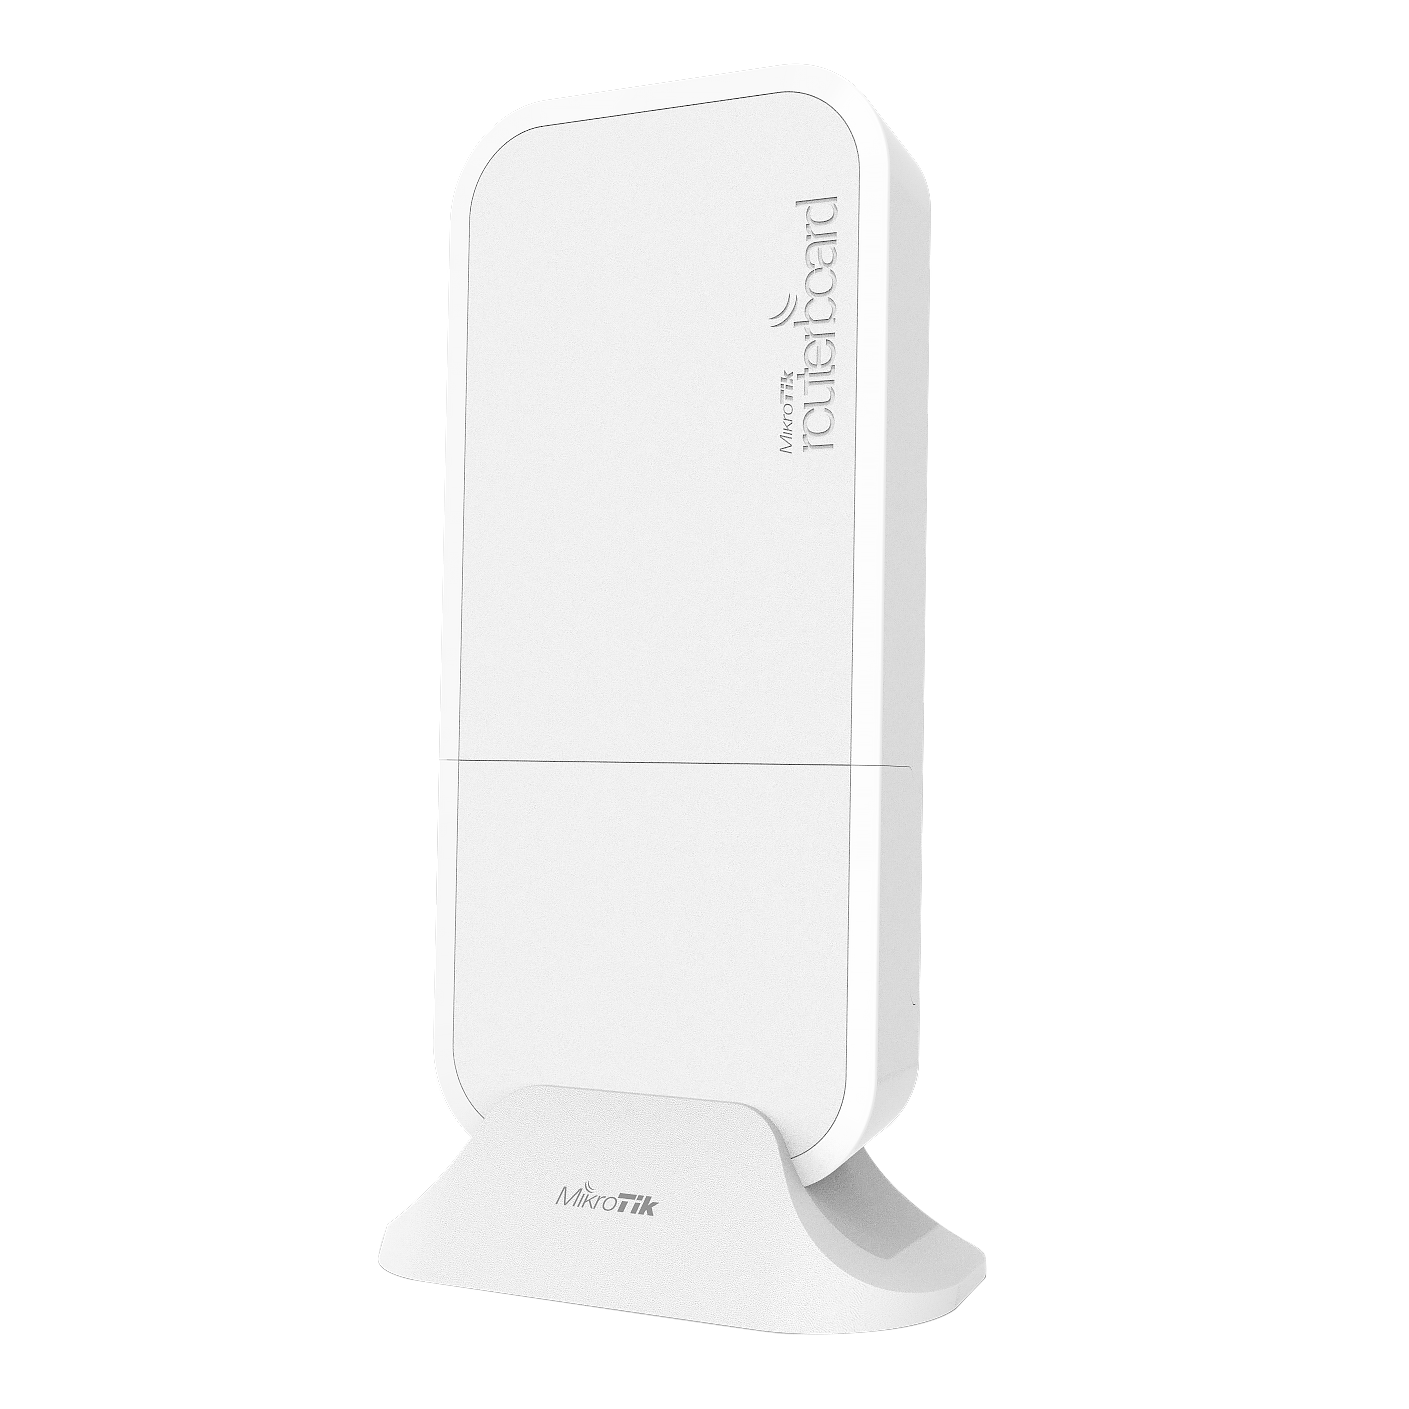 wAP WHITE Access point LTE for external use Mikrotik